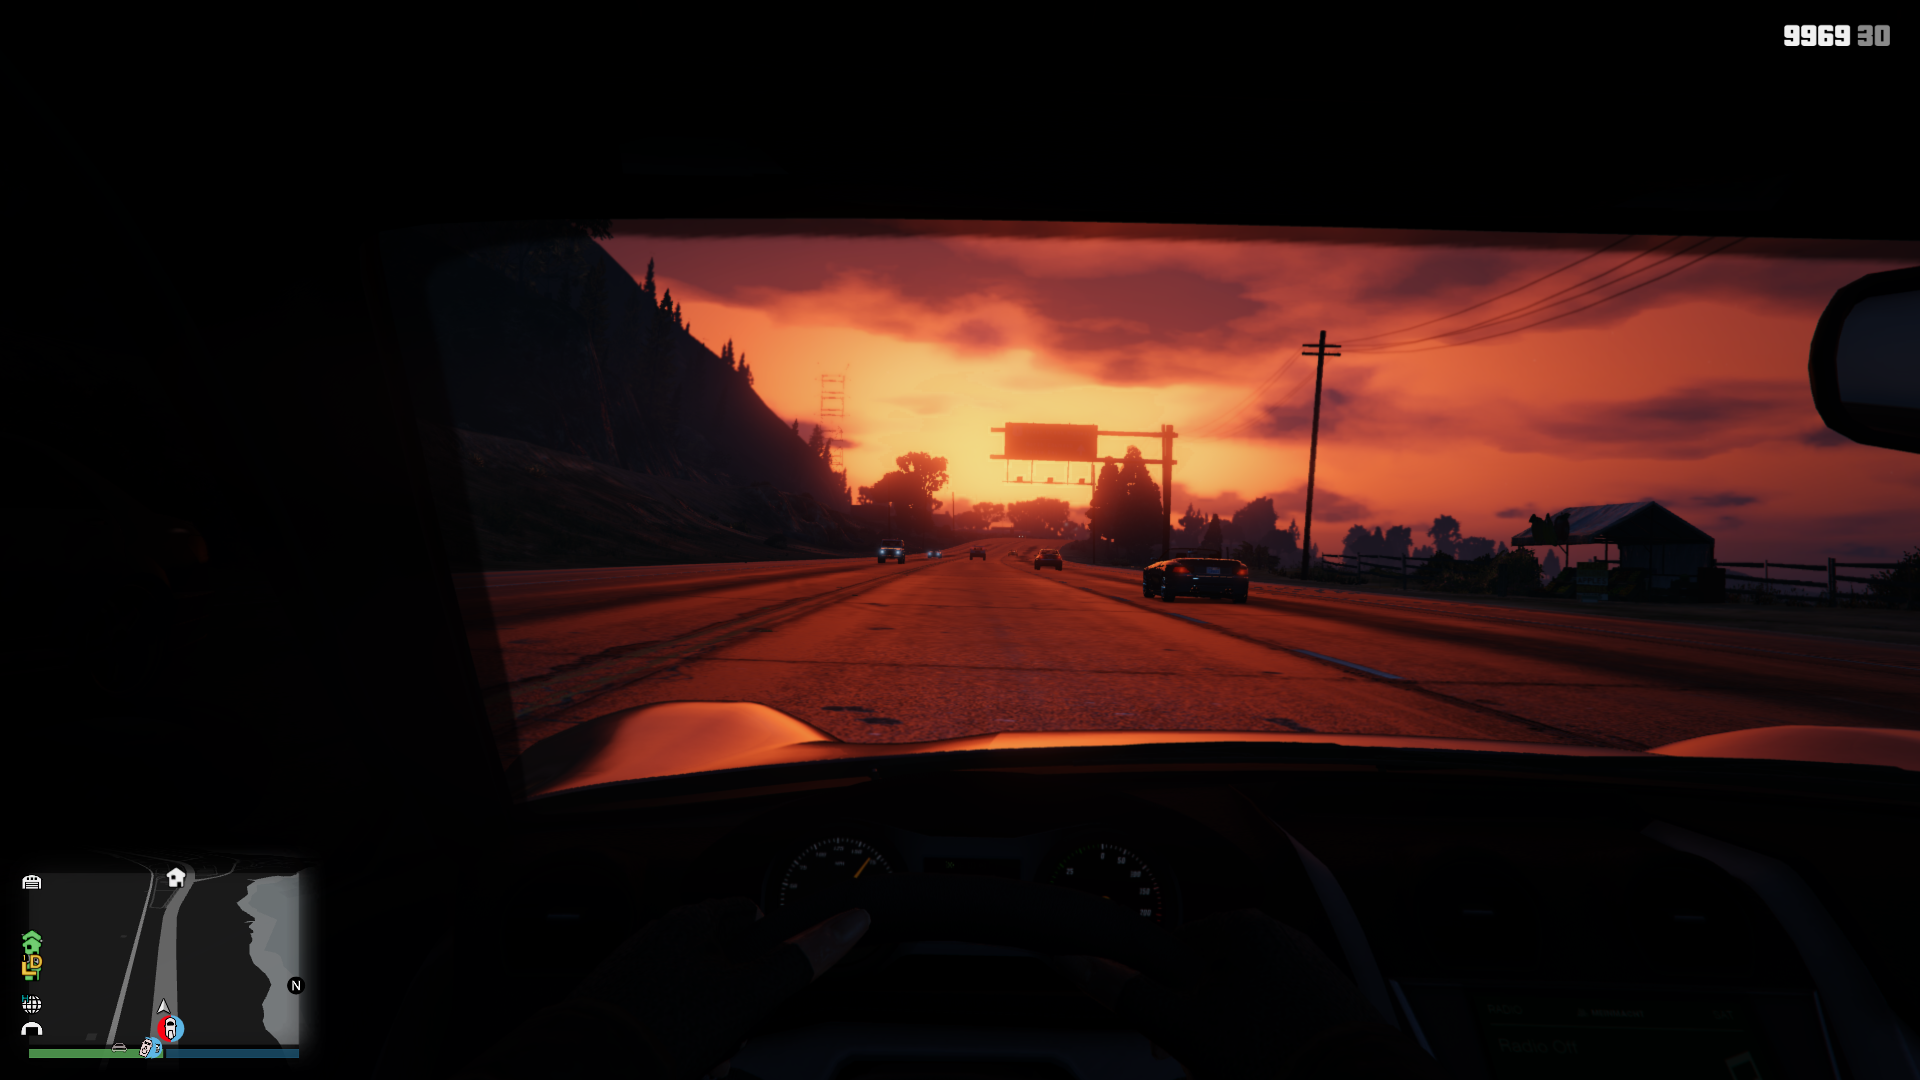 Going out for a nice sunset drive